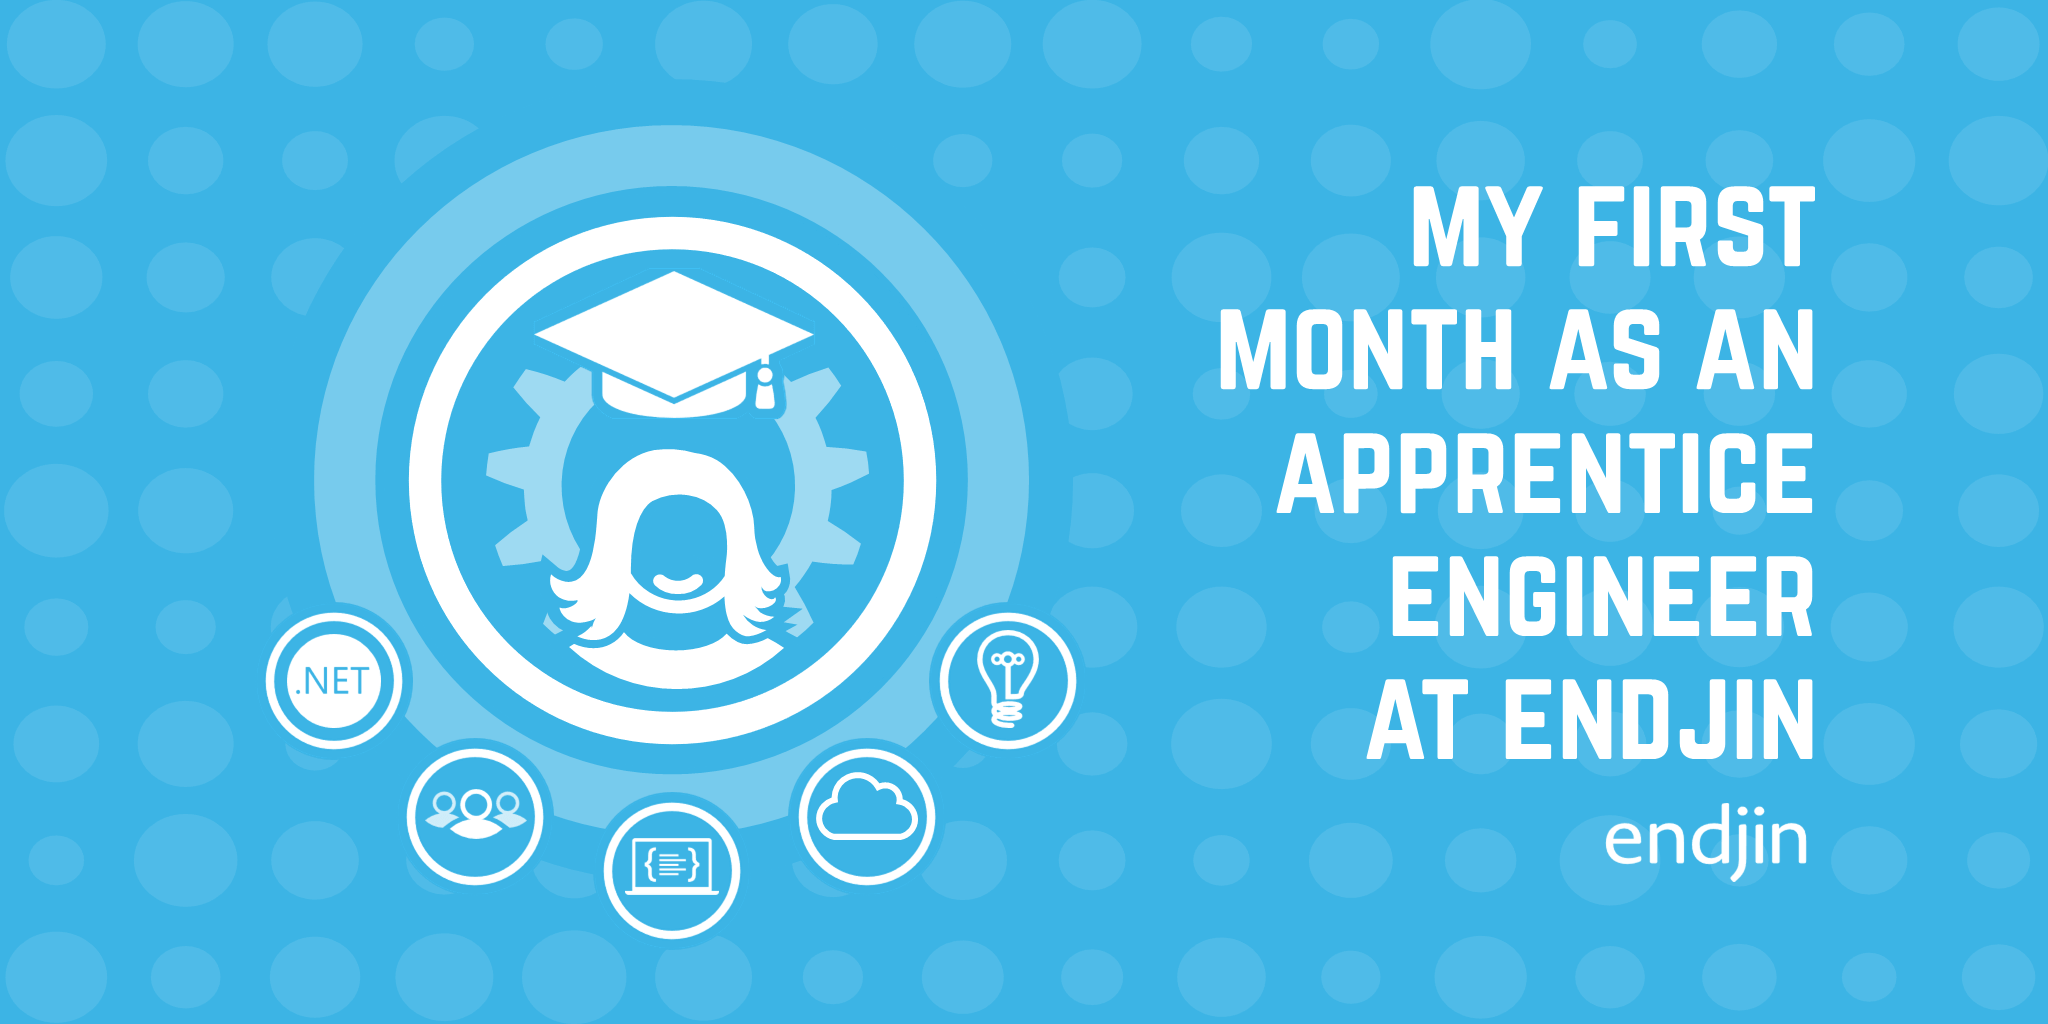 My first month as an apprentice software engineer at endjin